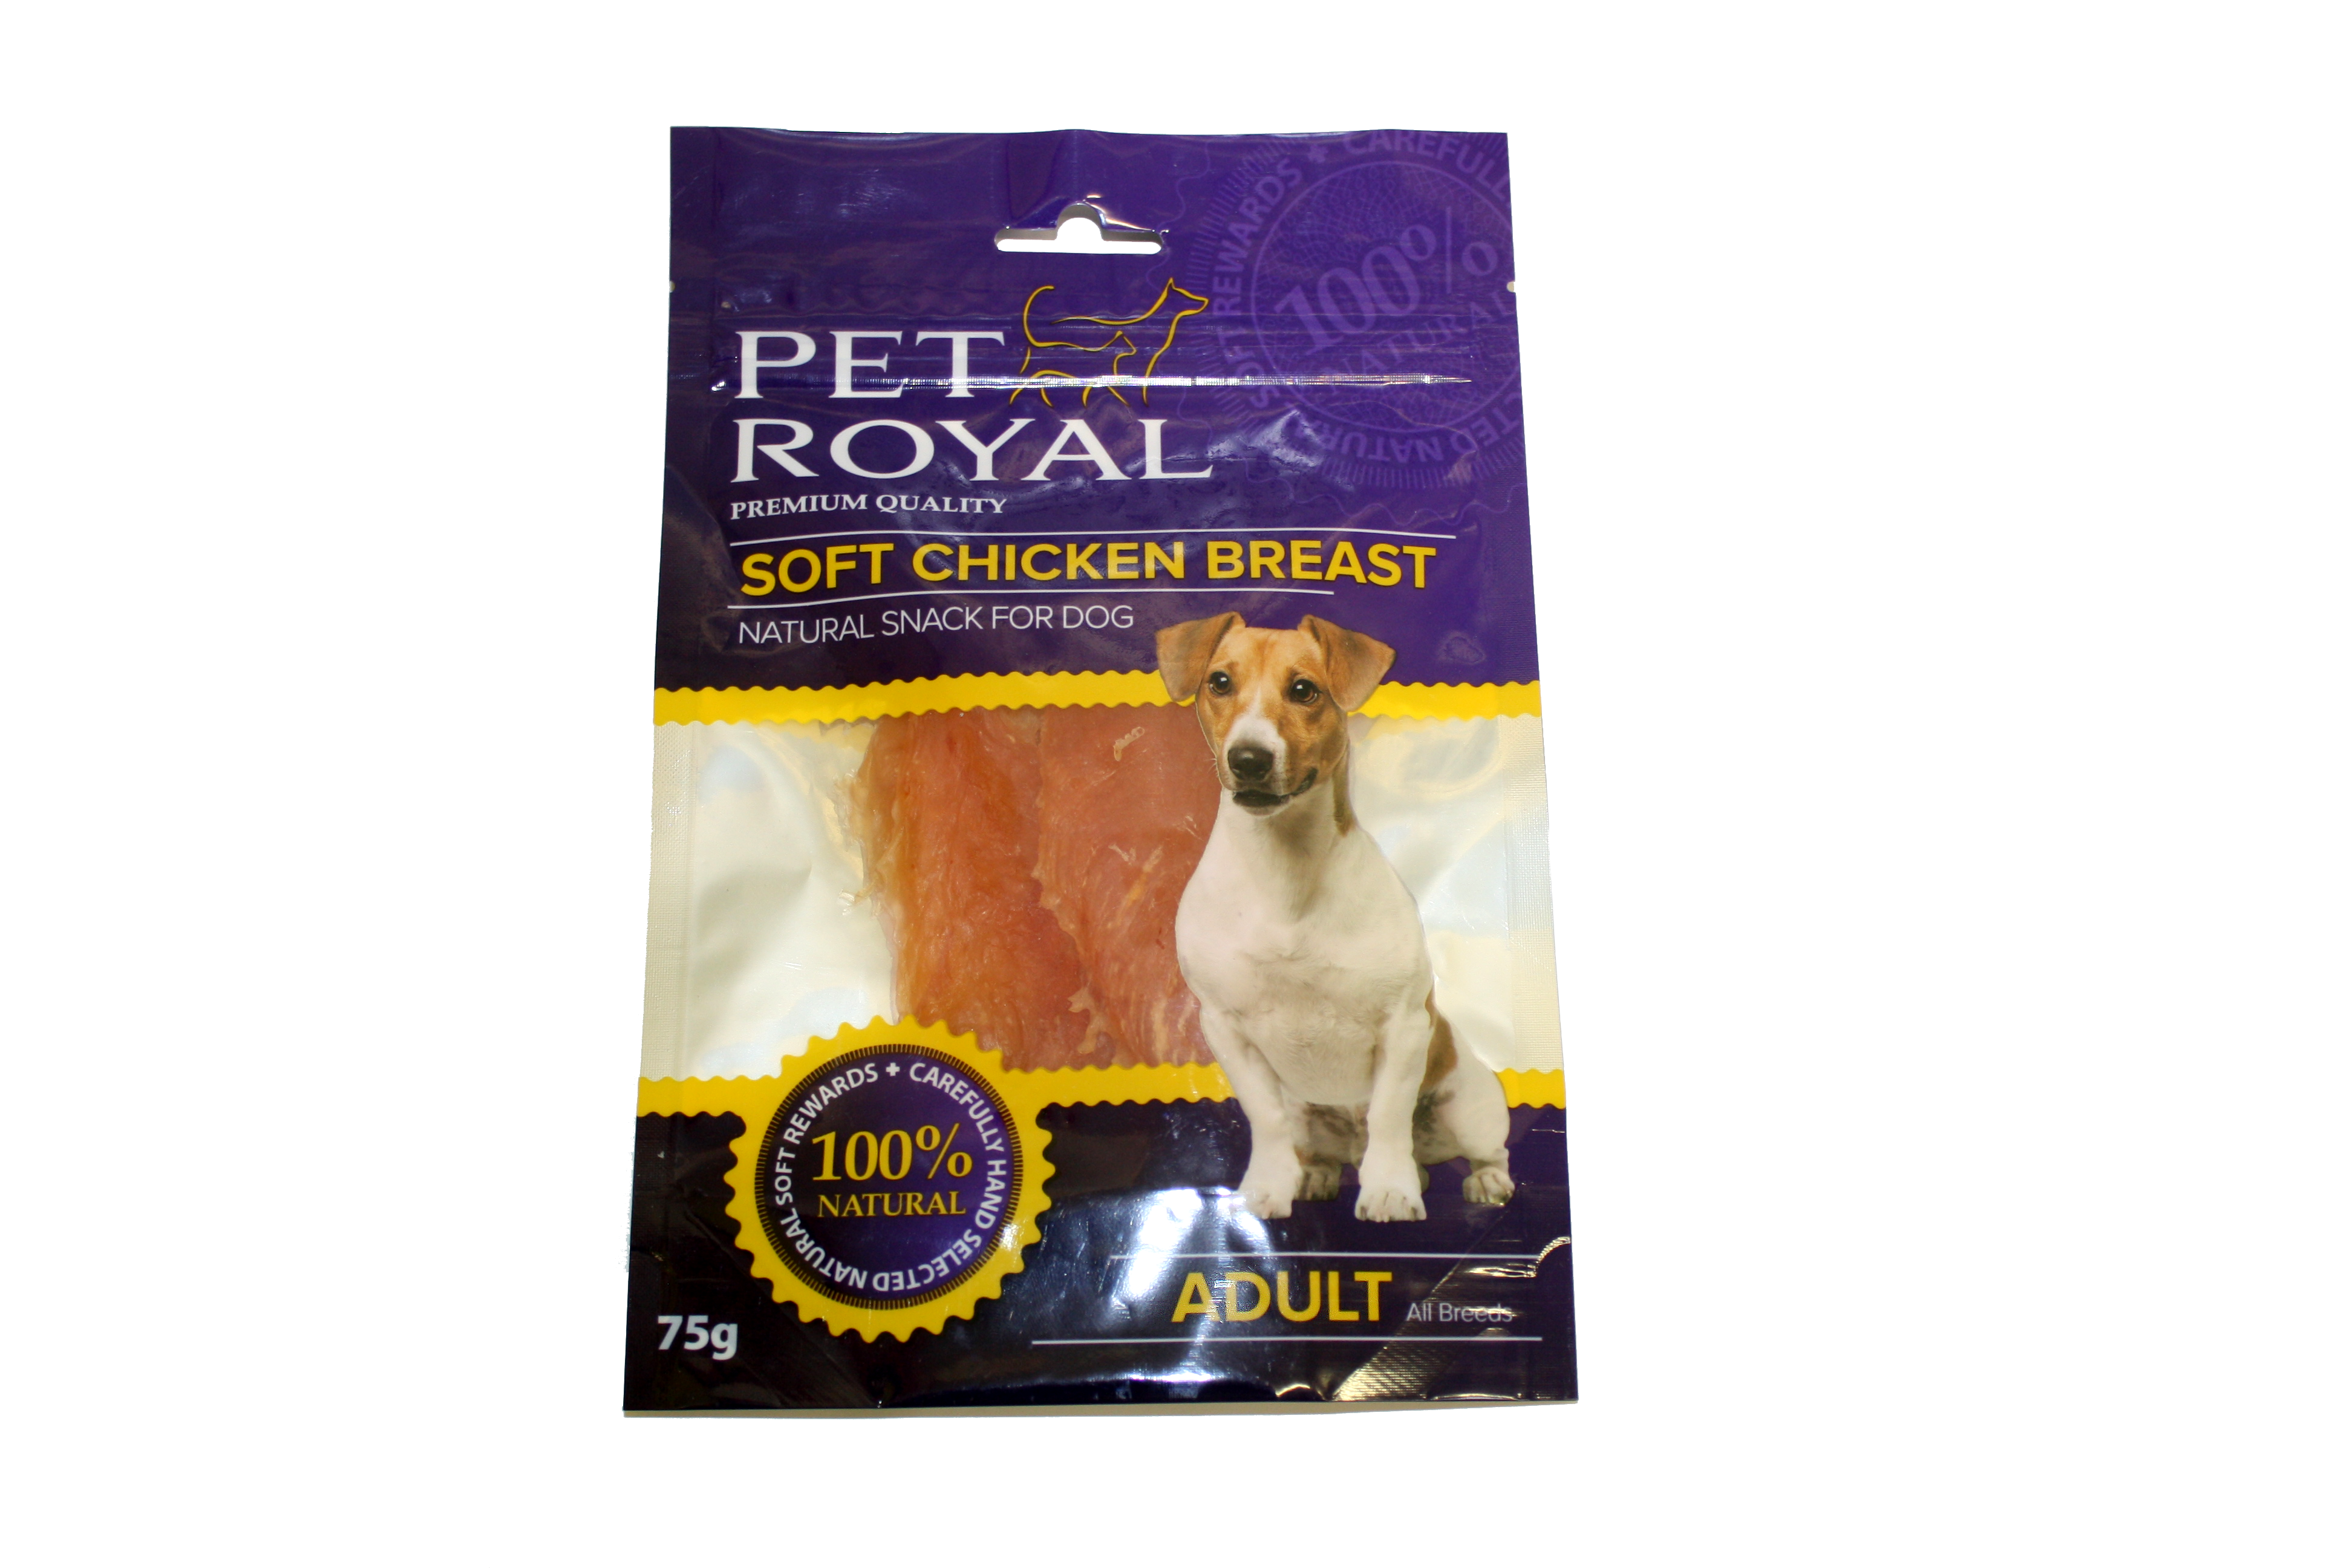 Pet Royal Dog Soft kuřecí prsa 75g